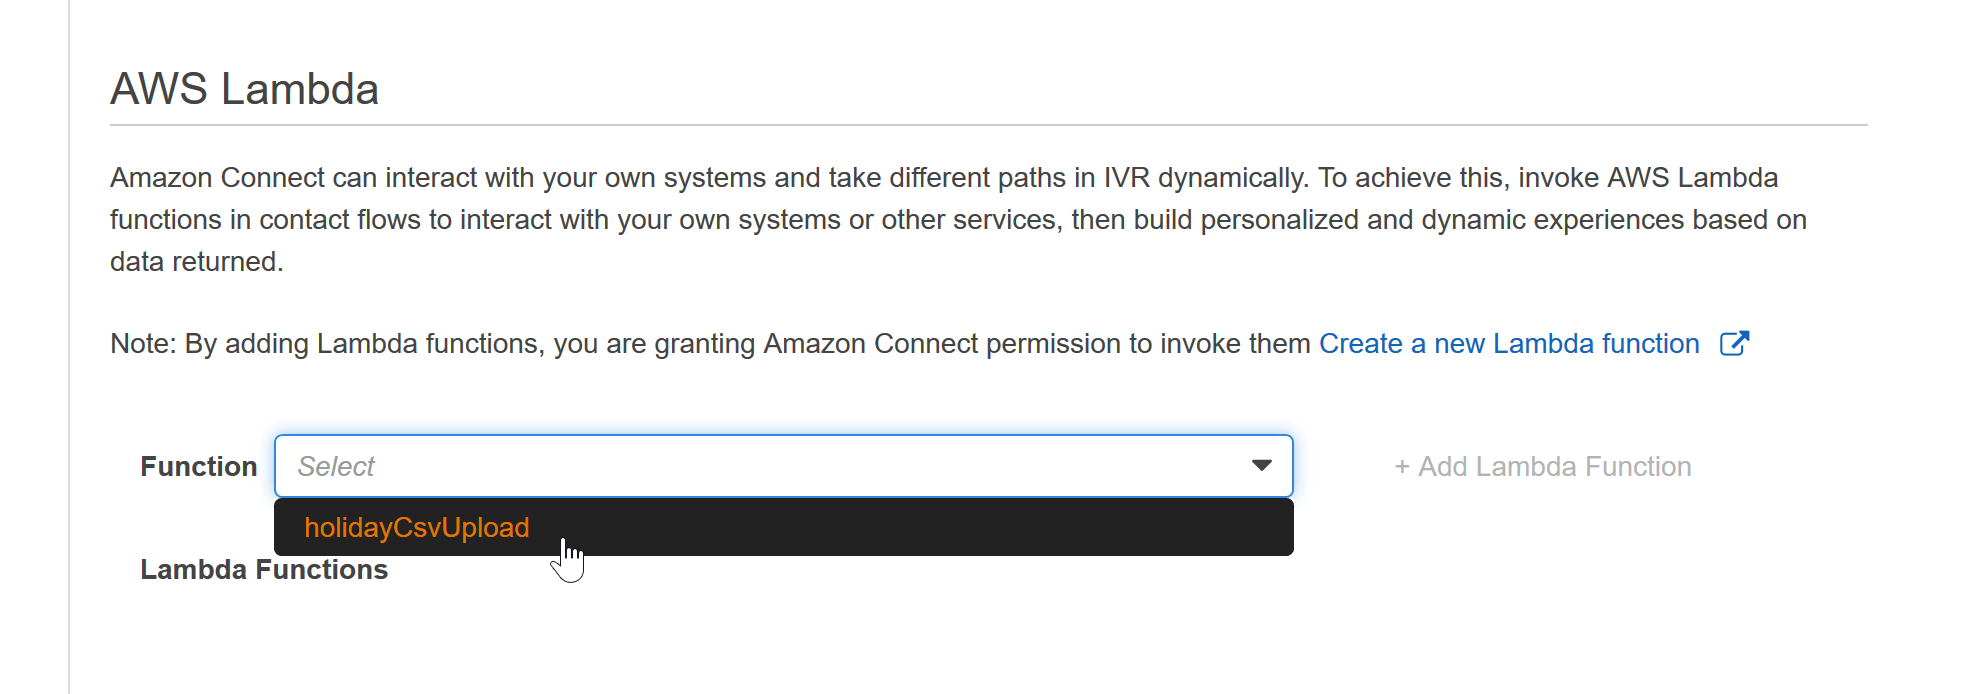 Invoking Lambda Functions with Amazon Connect - Perficient Blogs